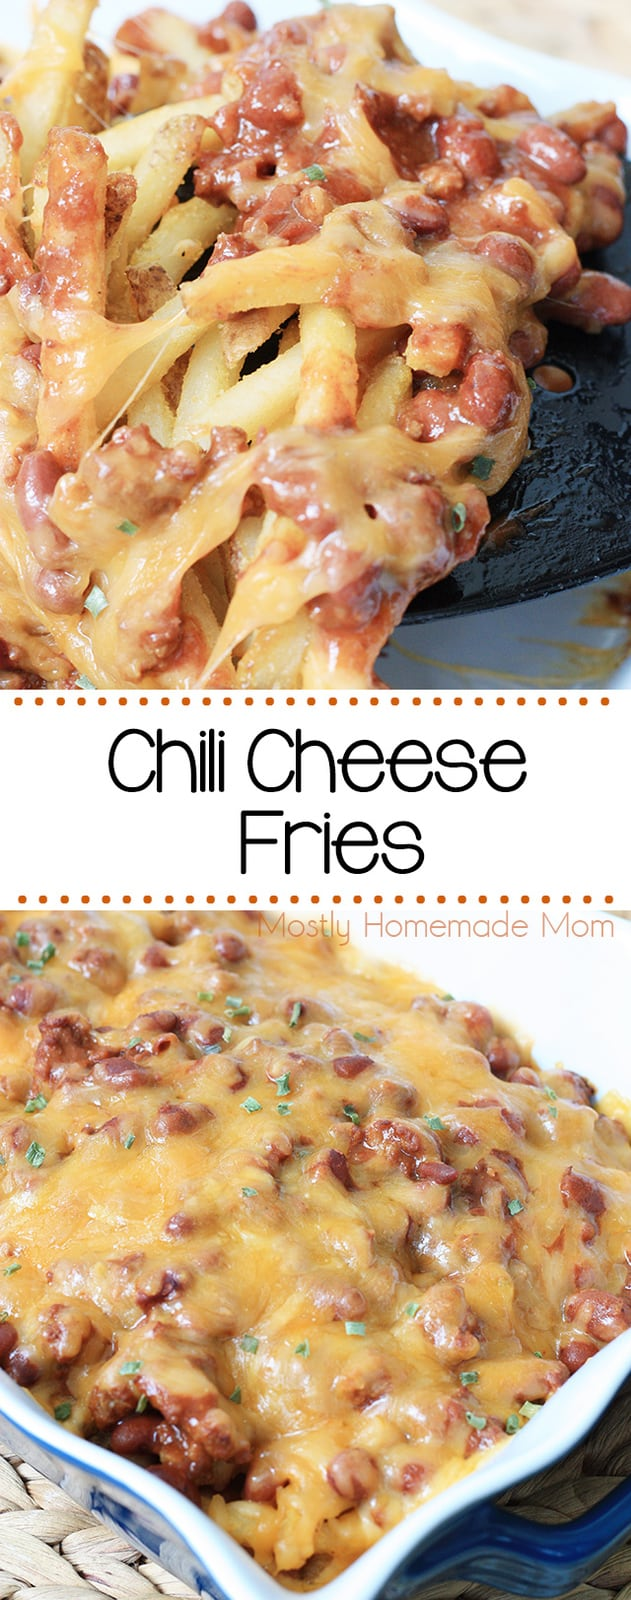 Chili Cheese Fries - these are SO easy!! Crispy oven french fries topped with chili and cheese, my kids go crazy for this!! #recipe #dinner #snack #cheesefries